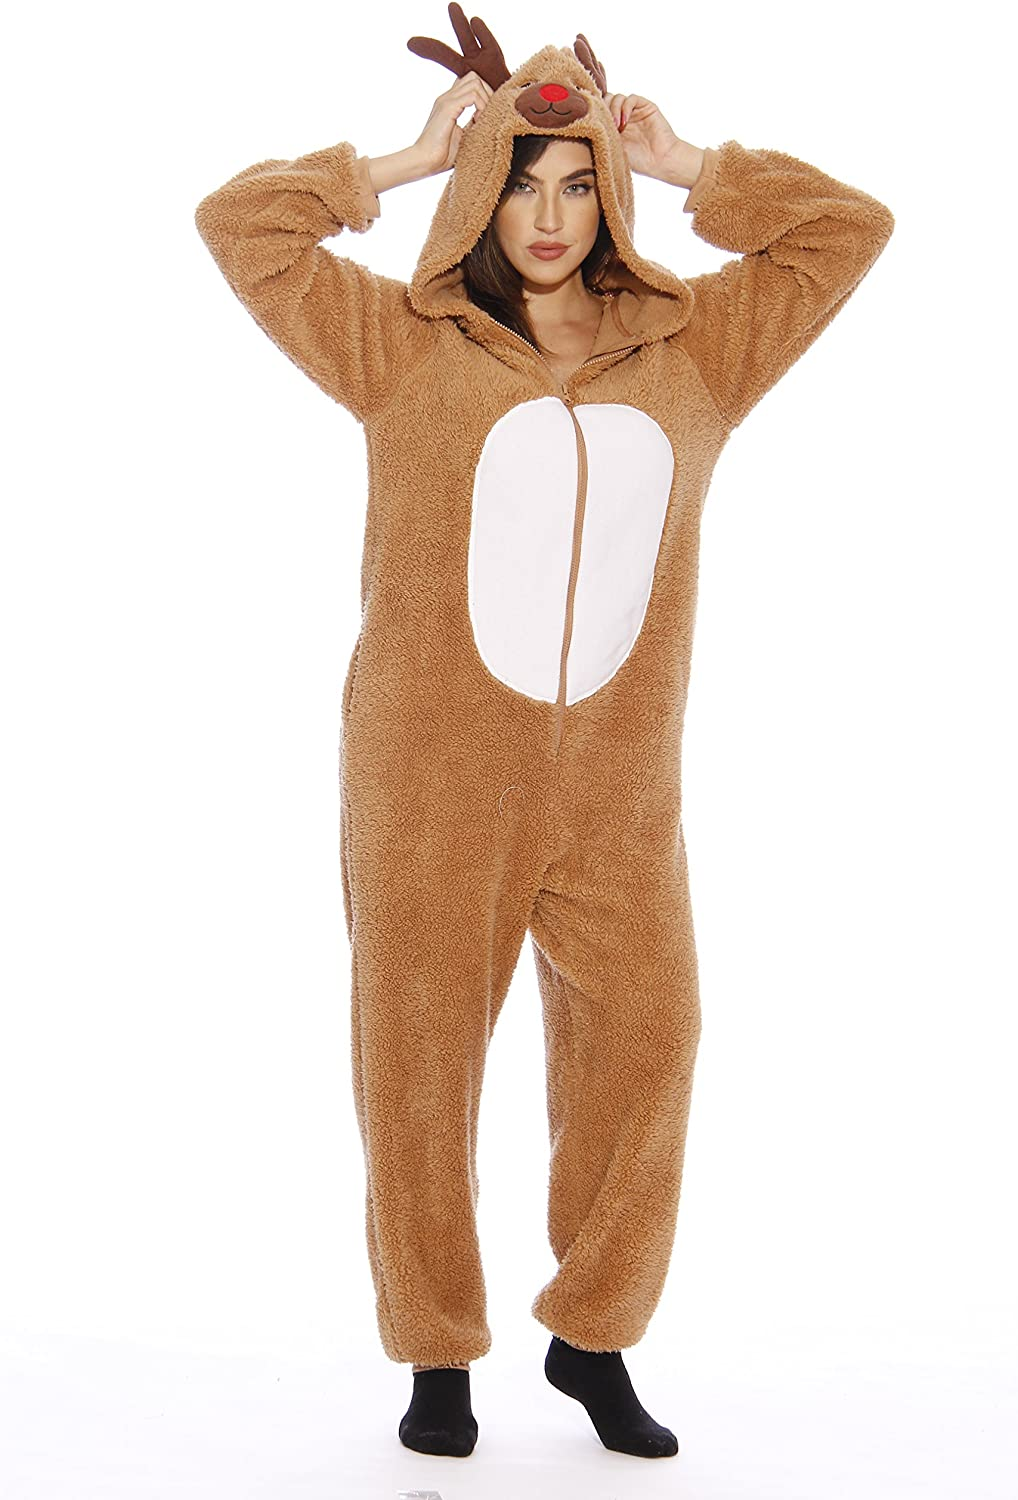 #followme Adult Christmas Onesie for Women Sherpa One-Piece Pajamas